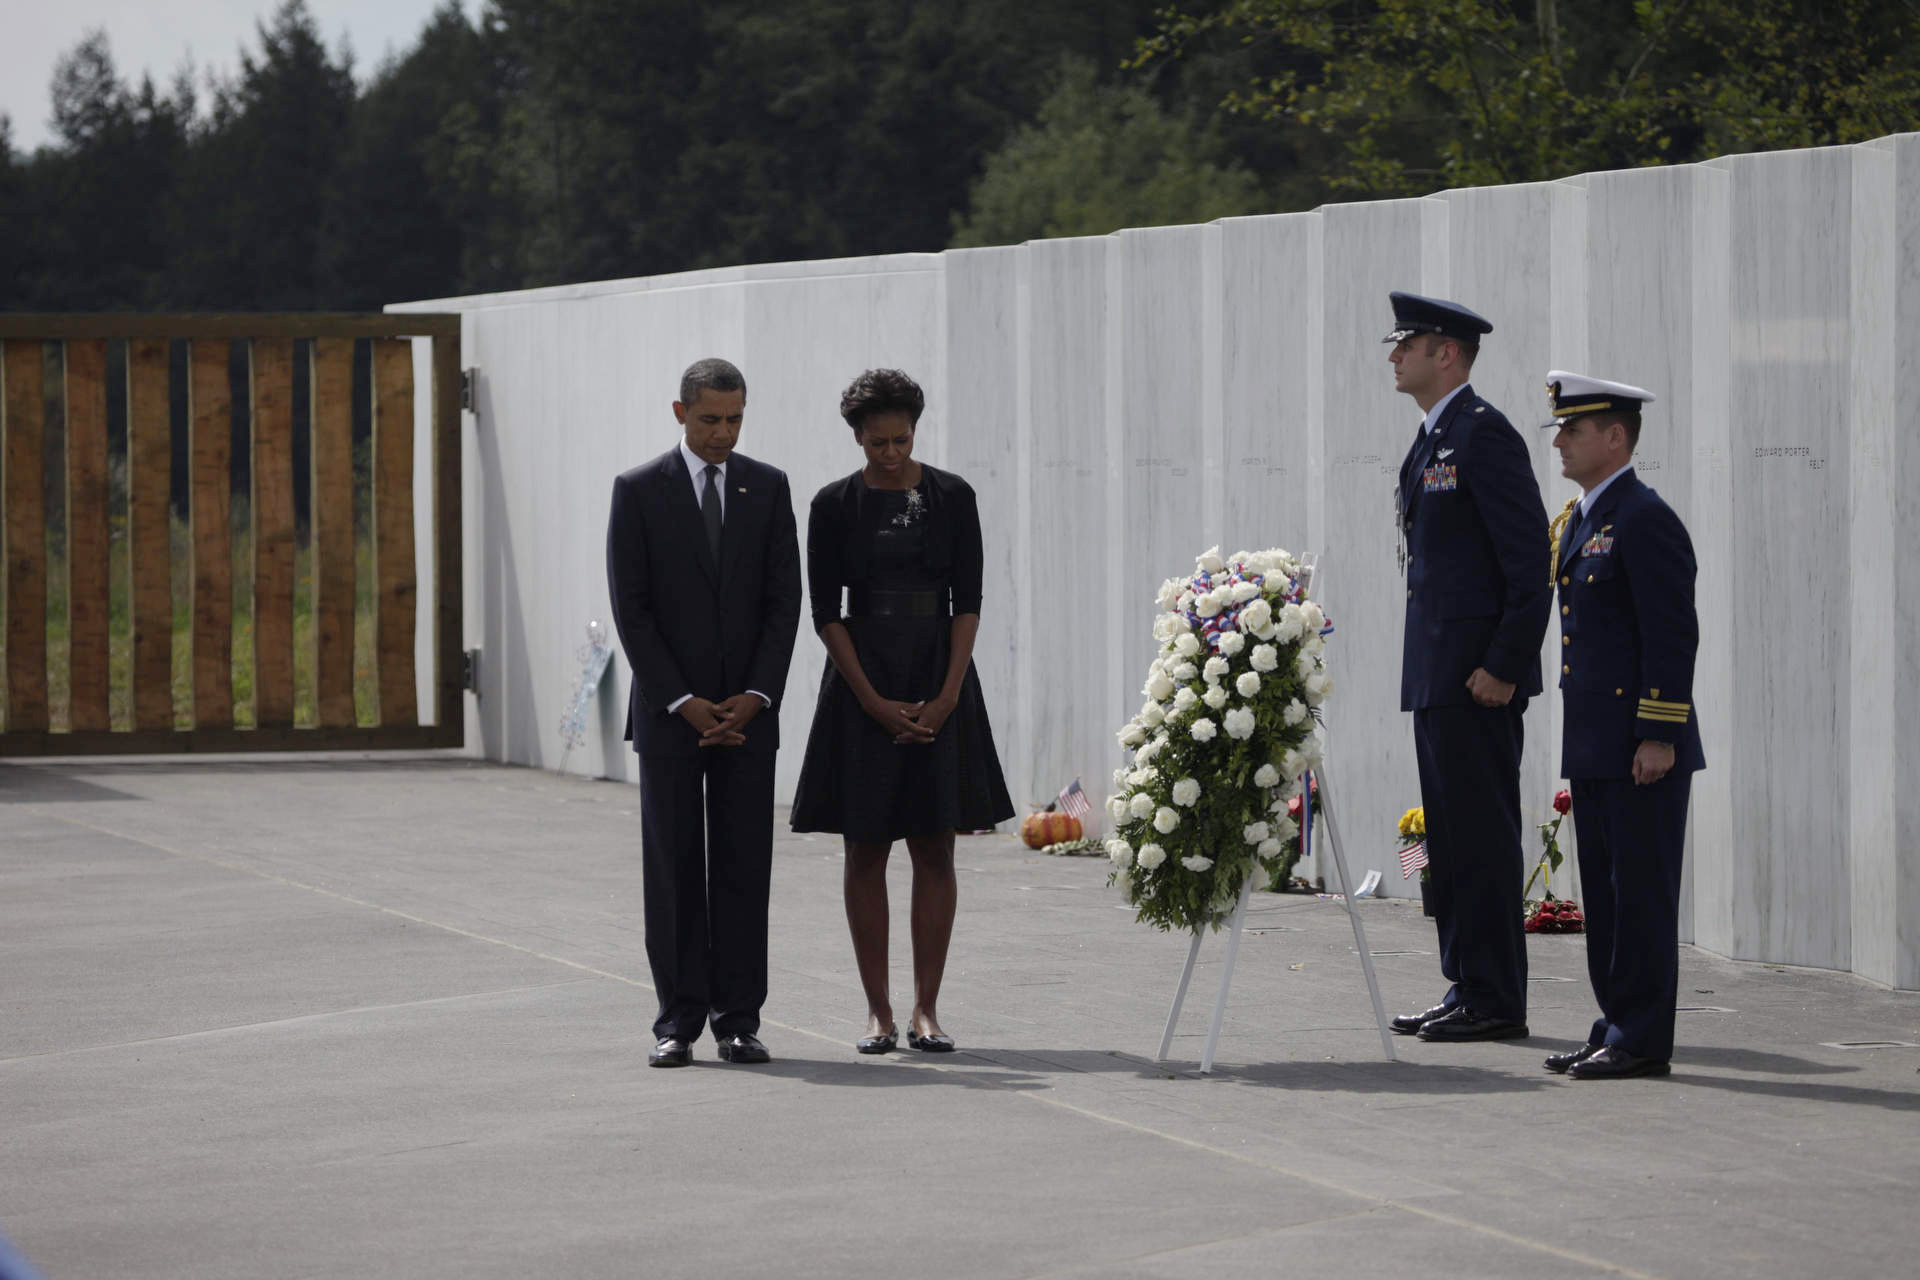 President Obama and First Lady Michelle Obama participate in a wreath laying ceremony in Shanksville PA